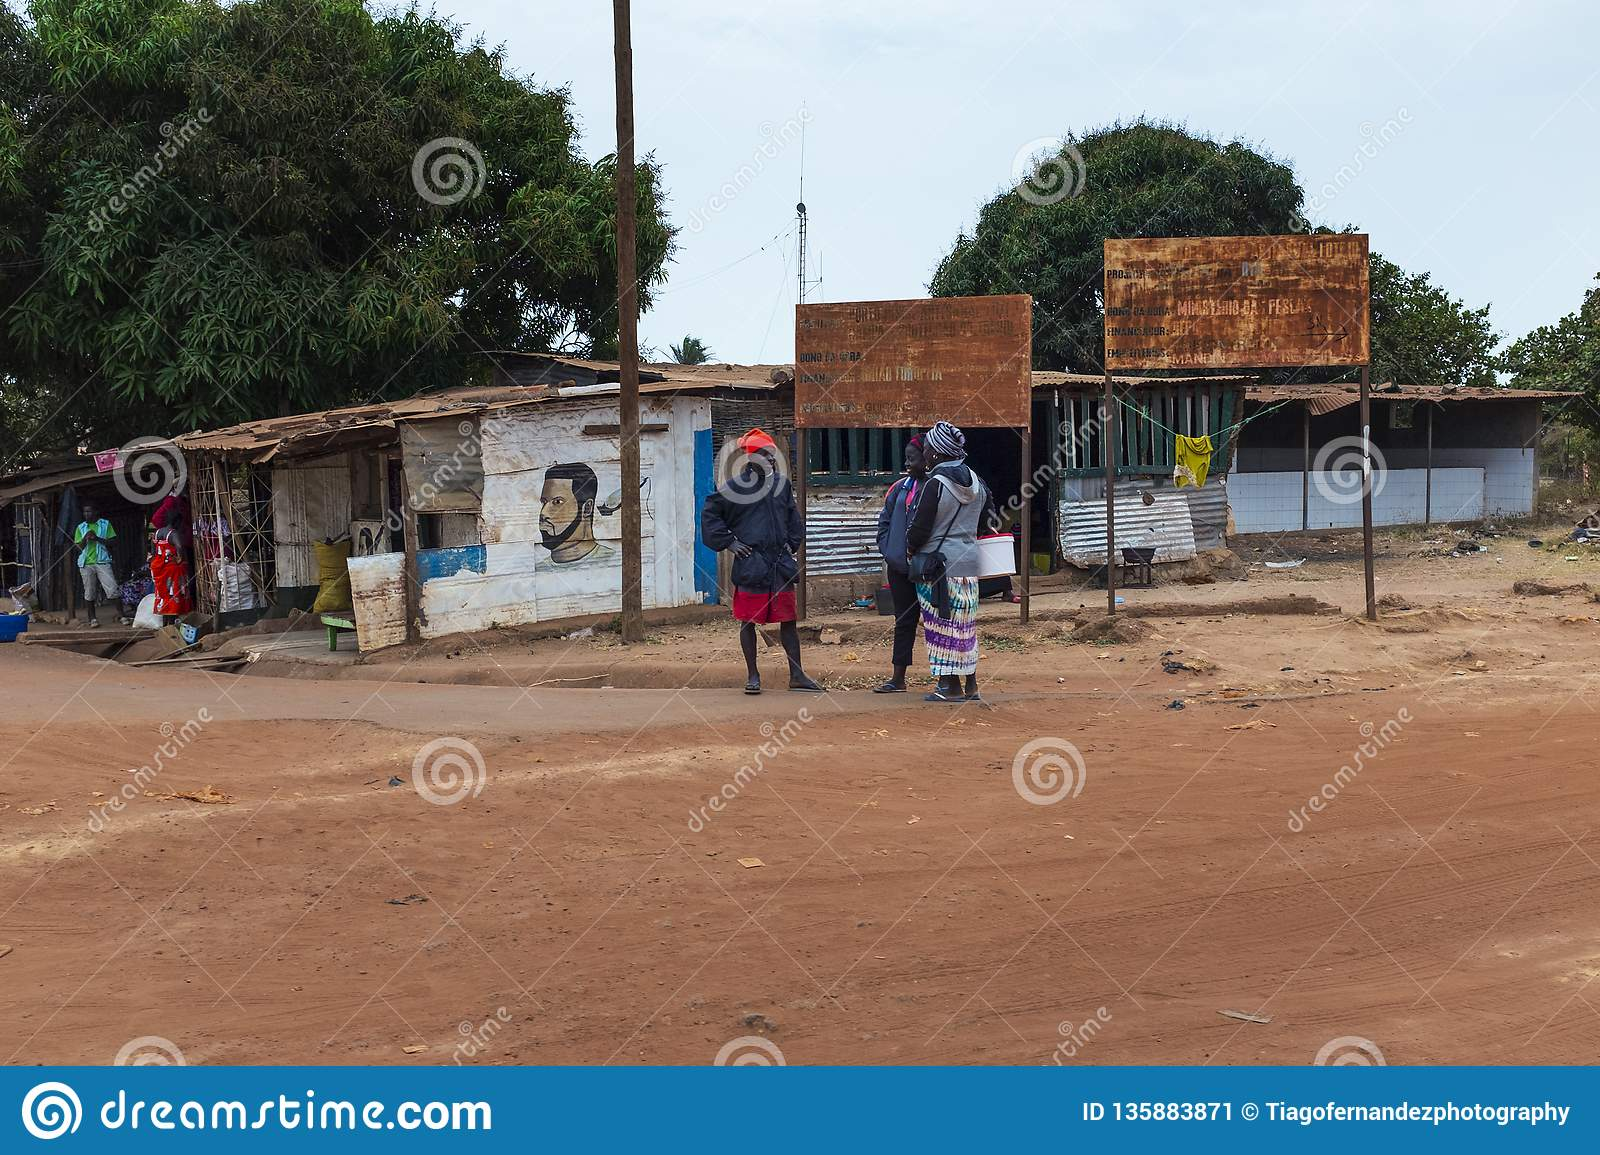 People talking near a barbershop in a slum at the city of Bissau, in Guinea-Bissau